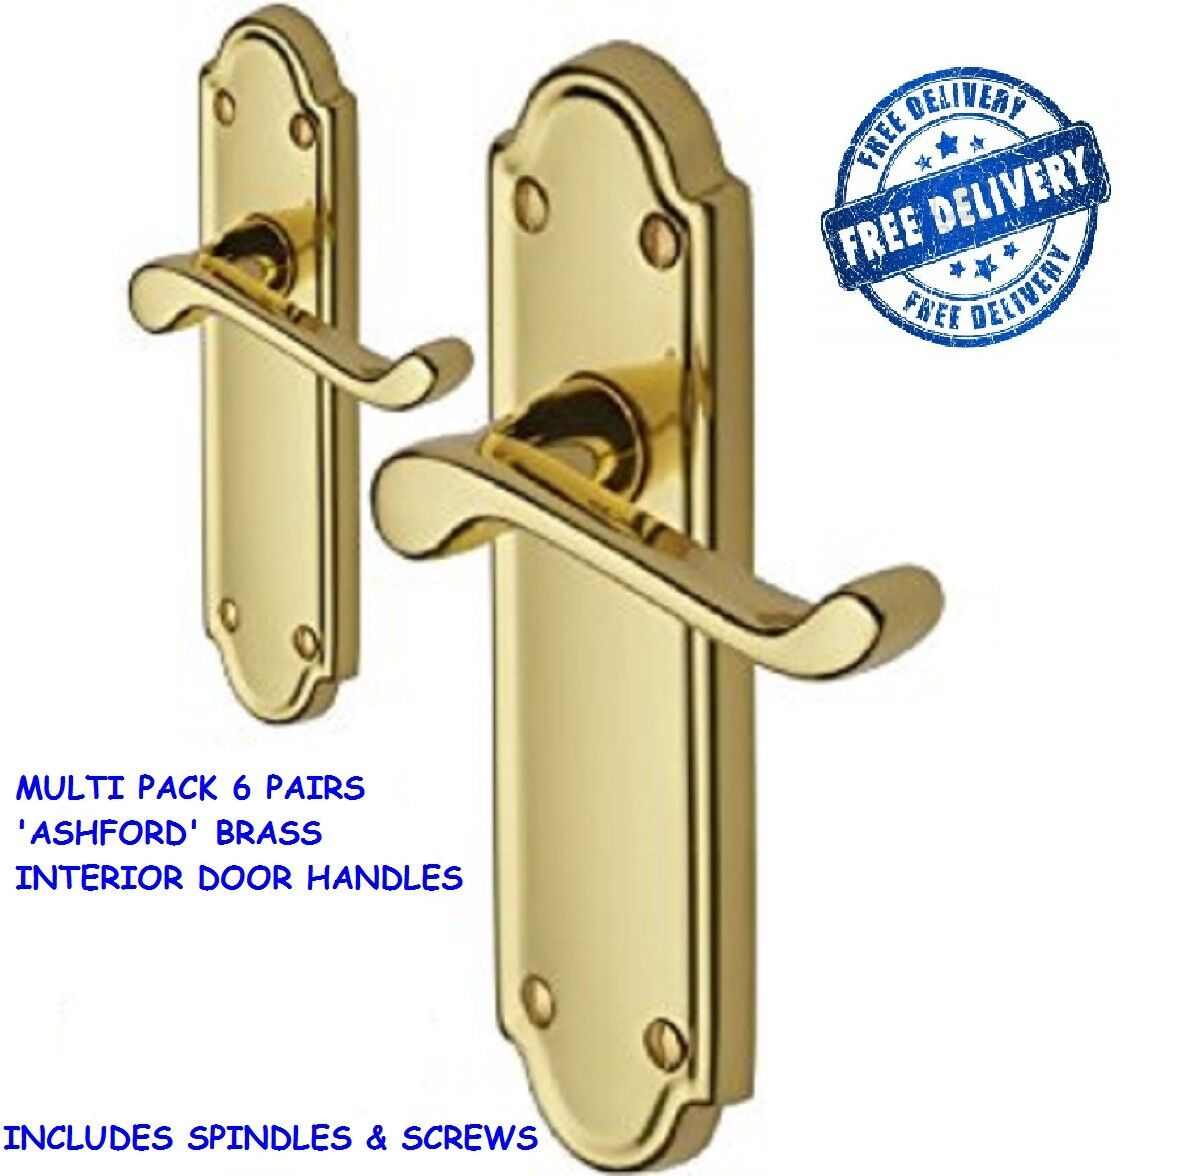 6 PAIRS of Polished Brass Internal Door Handles in 'Ashworth' Style  D12